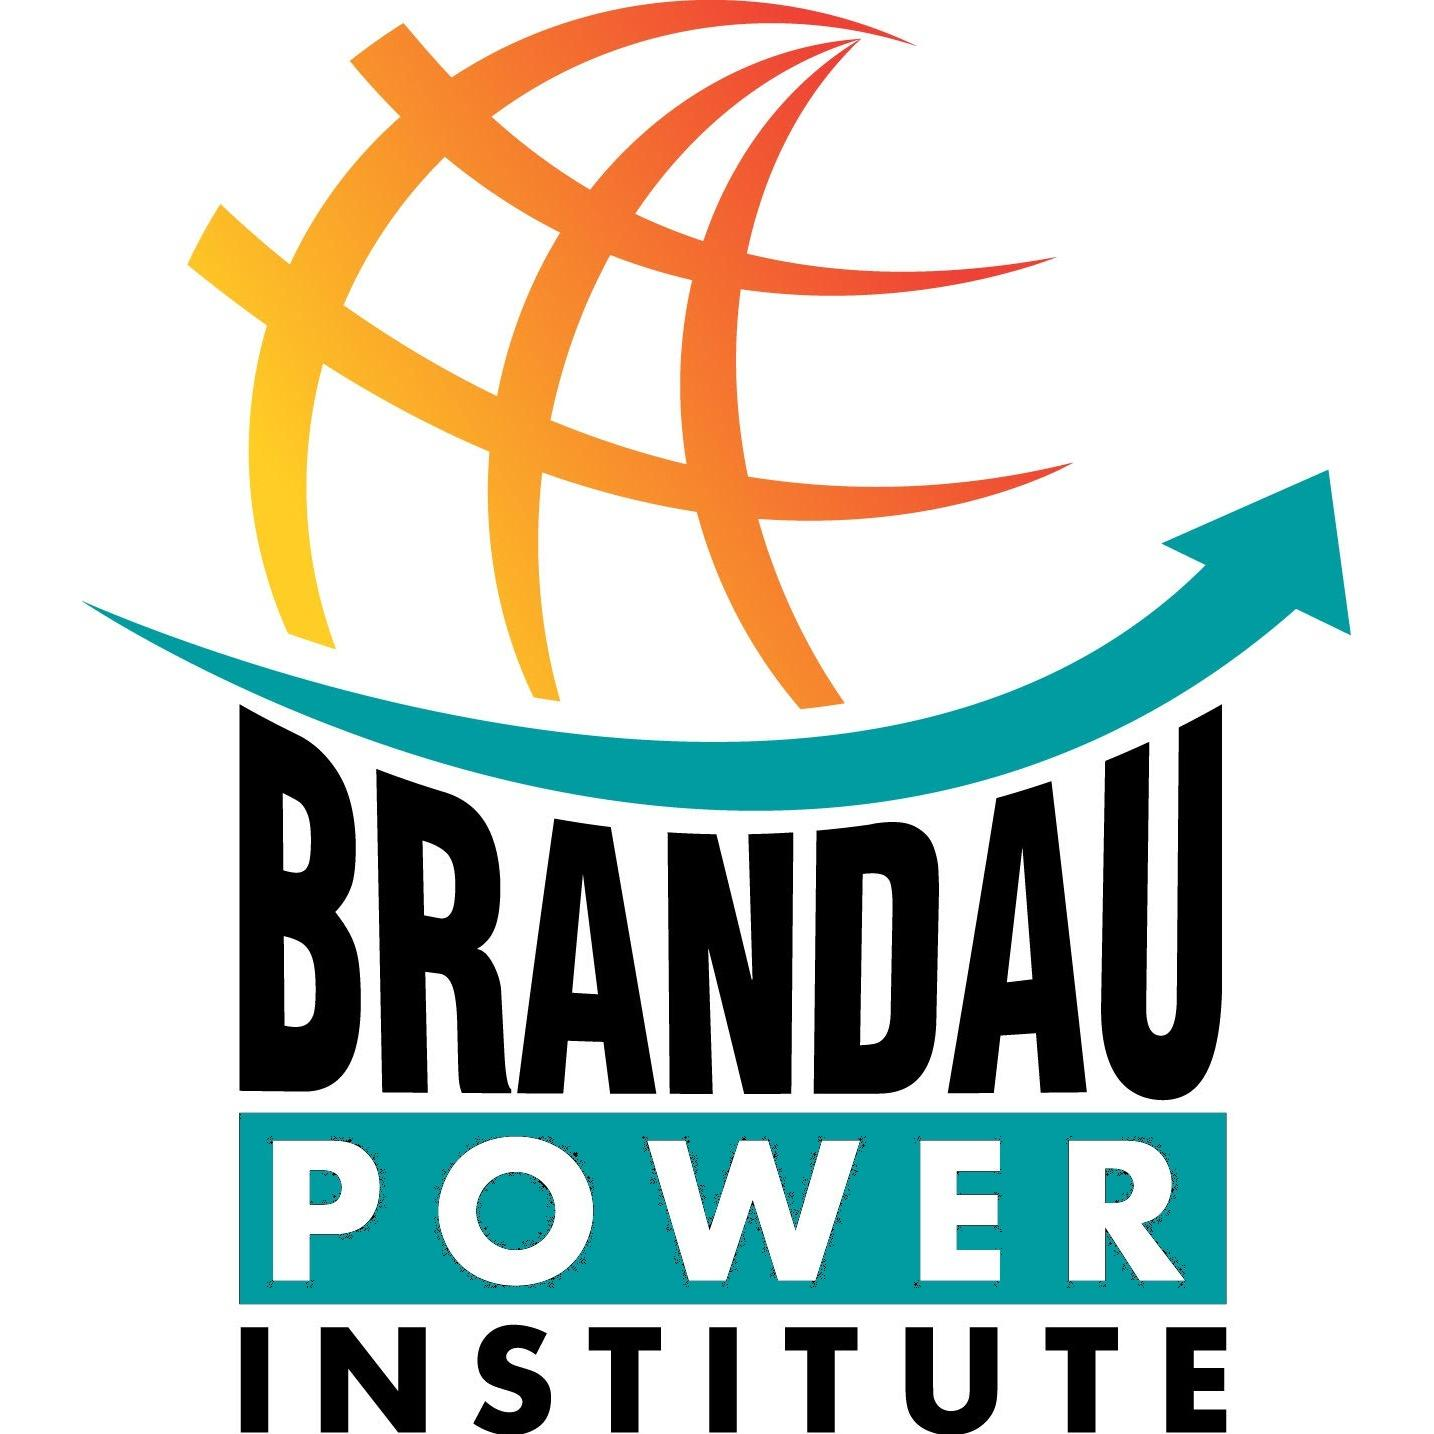 Brandau Power Institute